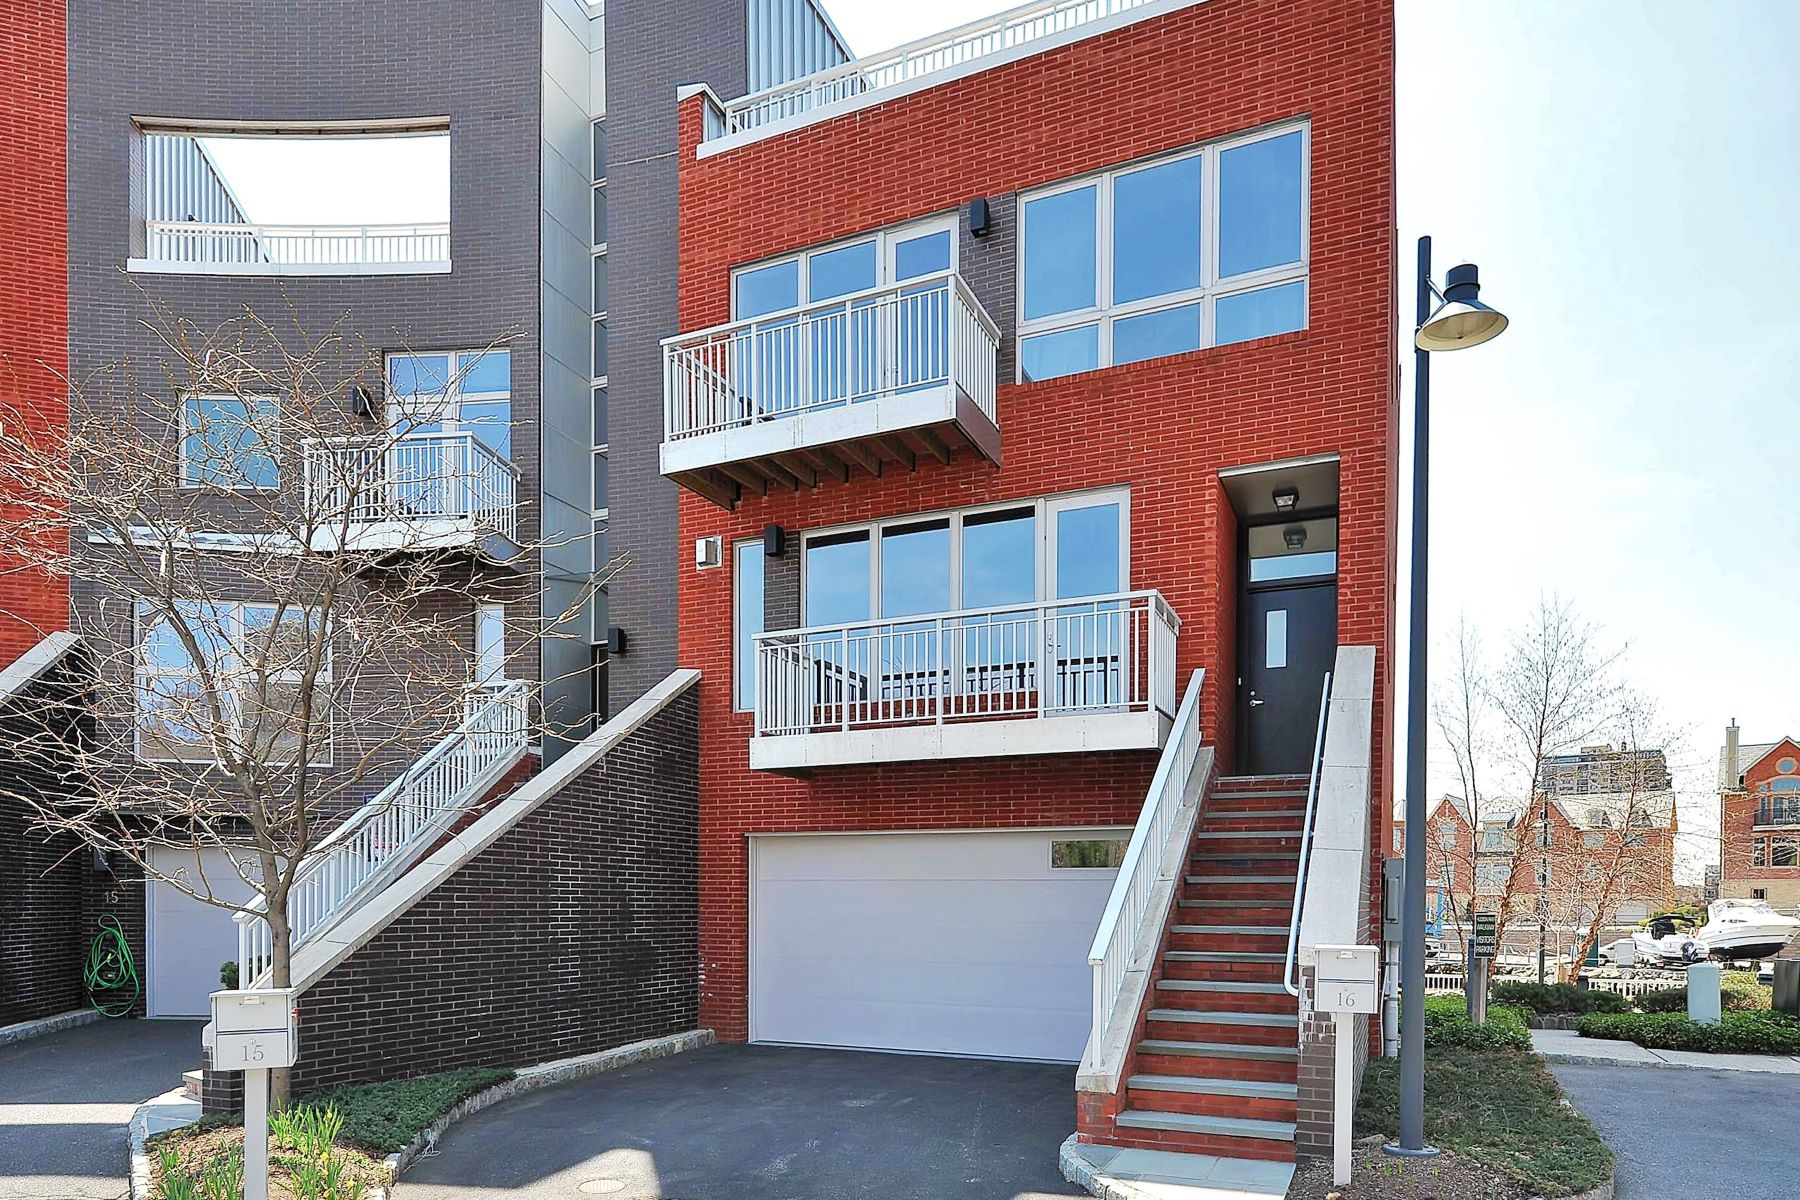 Townhouse for Sale at Luxury Townhouse Living 16 Vela Way Edgewater, New Jersey 07020 United States